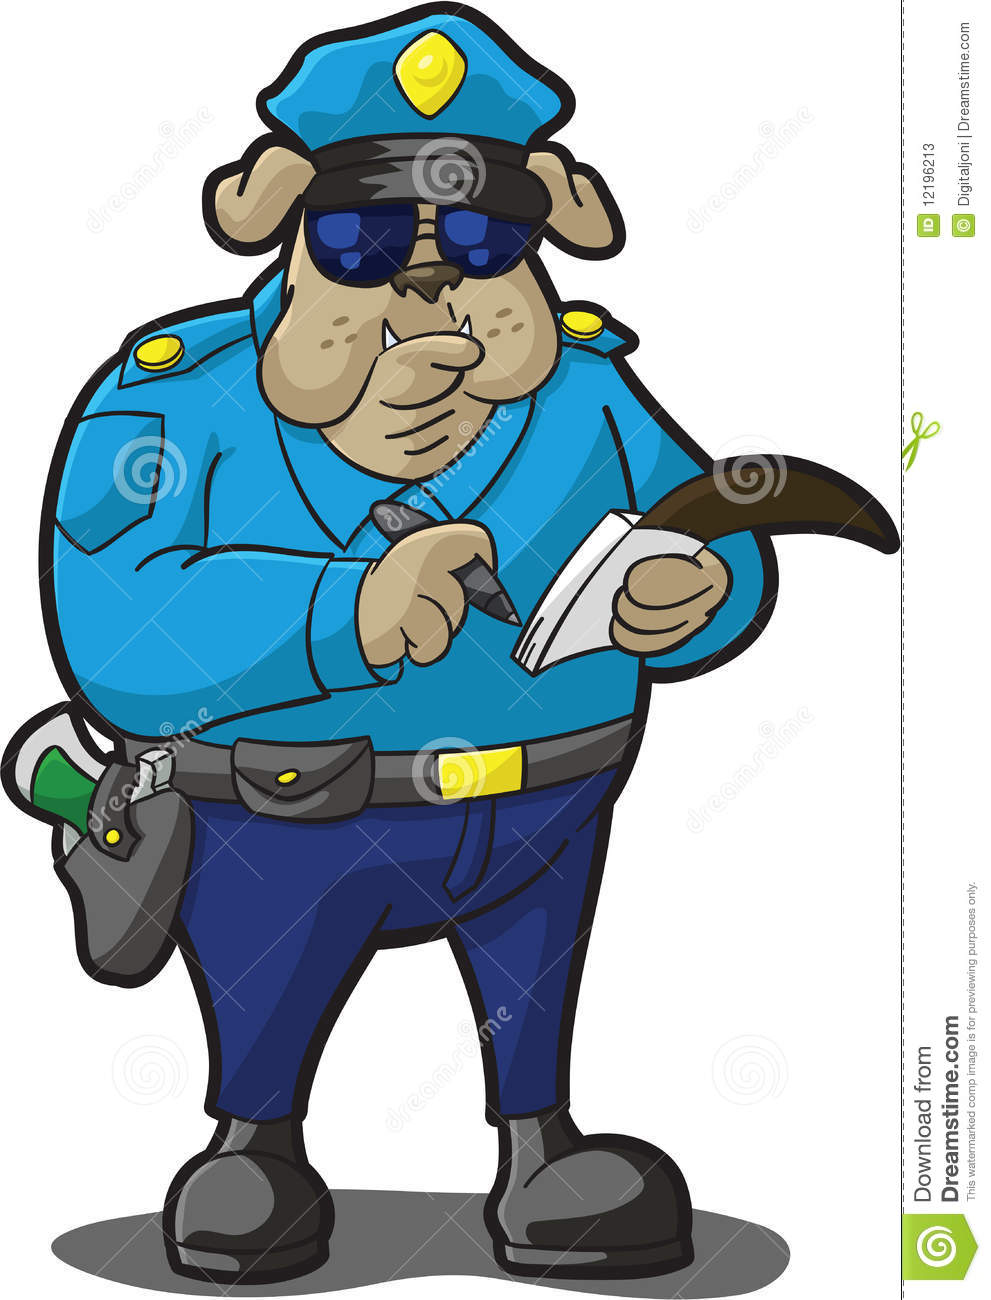 Police officer and dog clipart banner transparent stock Police officer and dog clipart - ClipartFest banner transparent stock